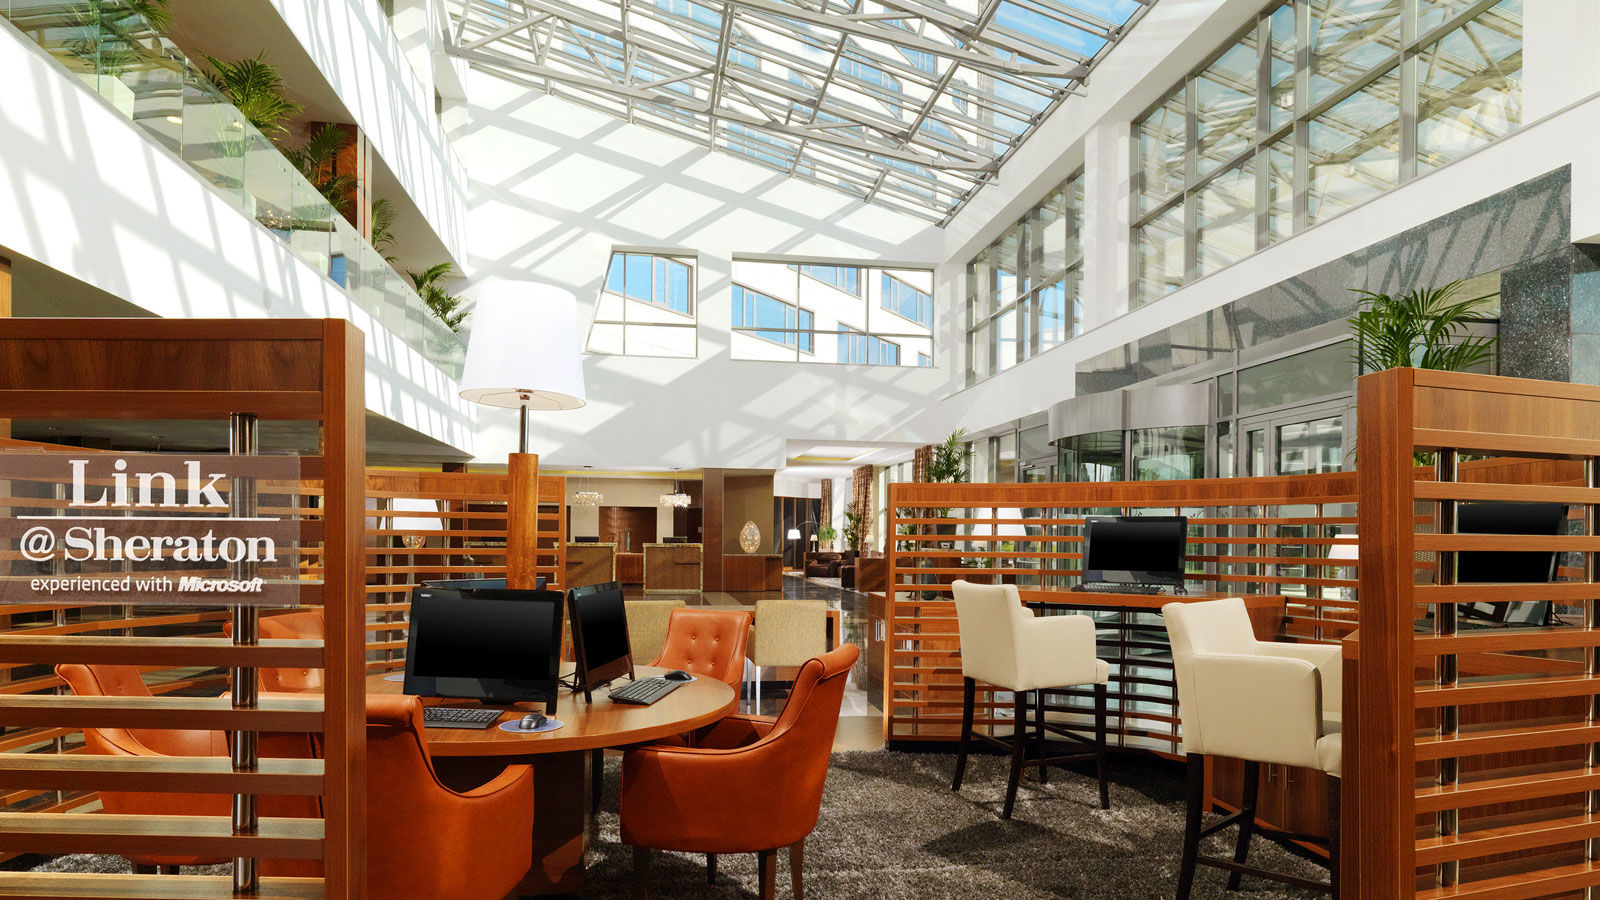 Link Sheraton cafe with up-to-date technologies at Sheraton Moscow Sheremetyevo